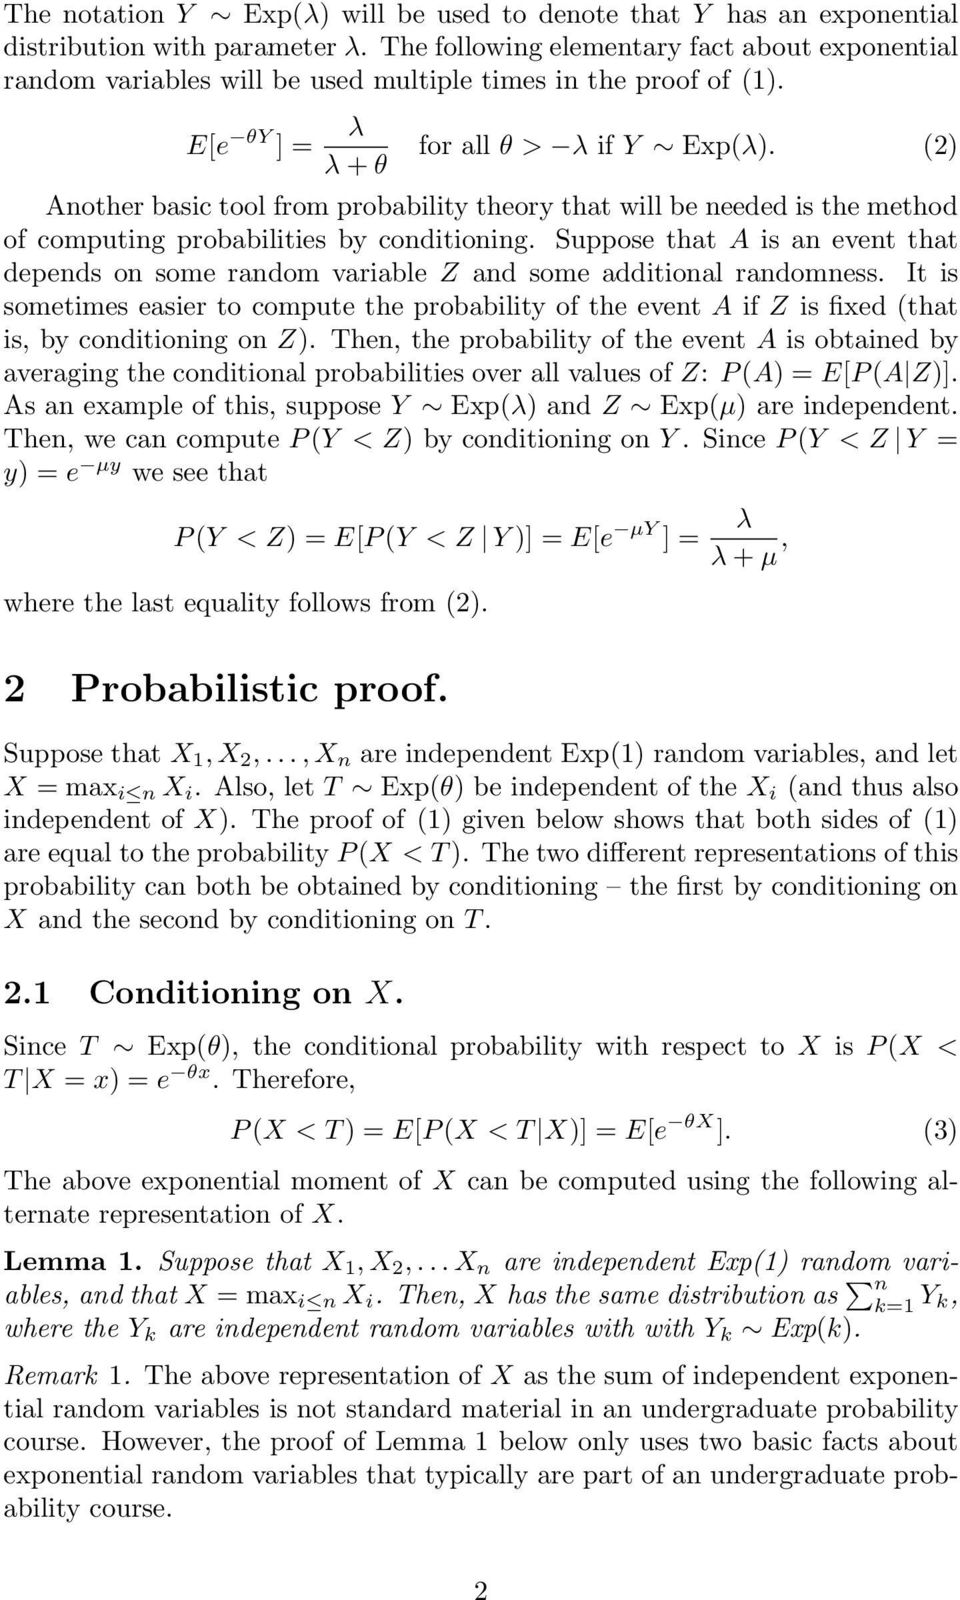 (2) Aother basic tool from probability theory that will be eeded is the method of computig probabilities by coditioig.